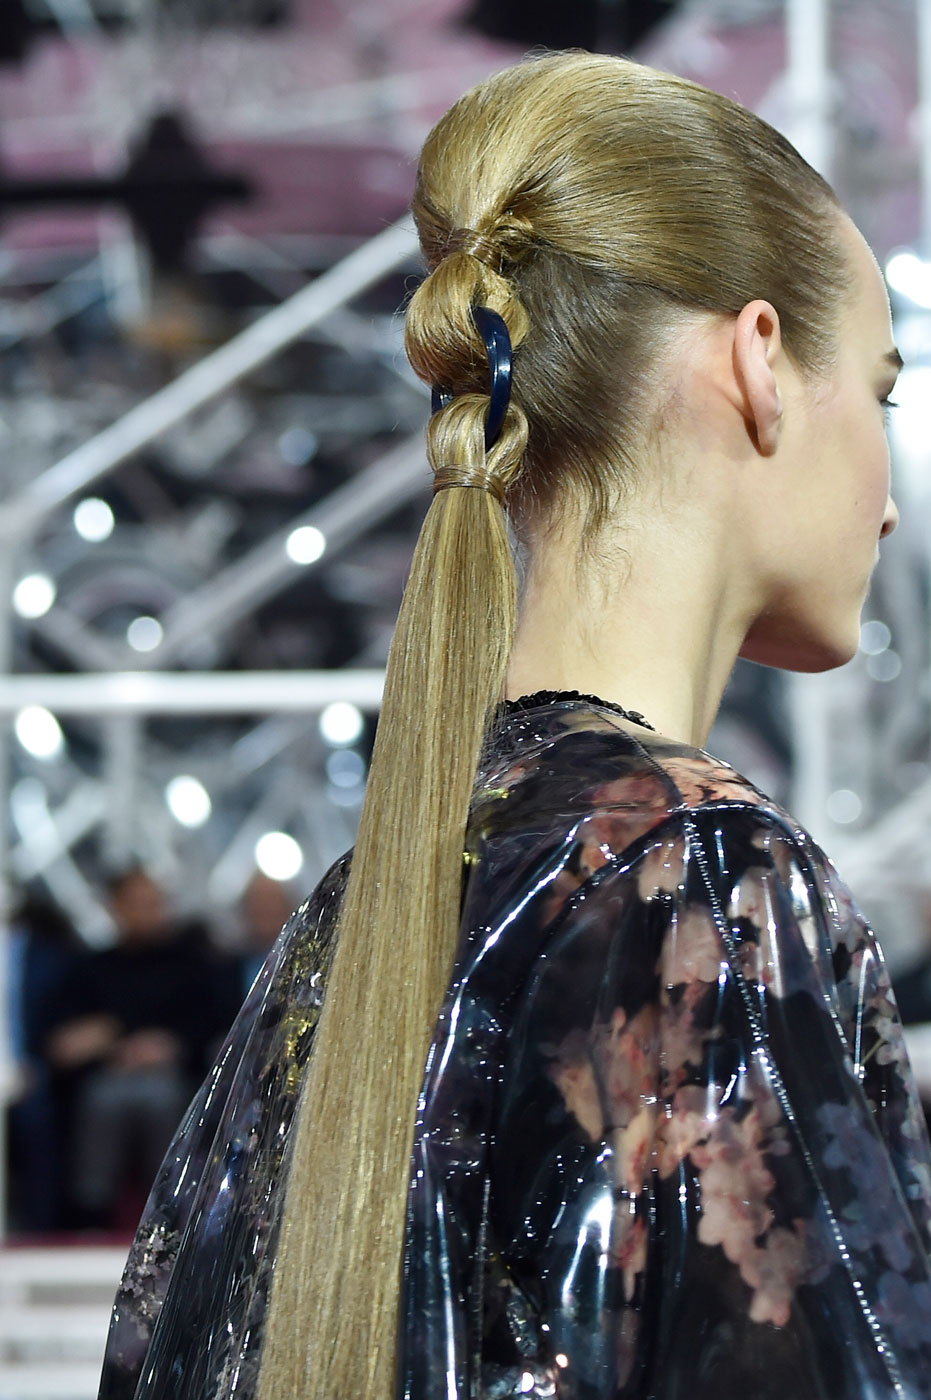 Christian-Dior-fashion-runway-show-close-ups-haute-couture-paris-spring-summer-2015-the-impression-007